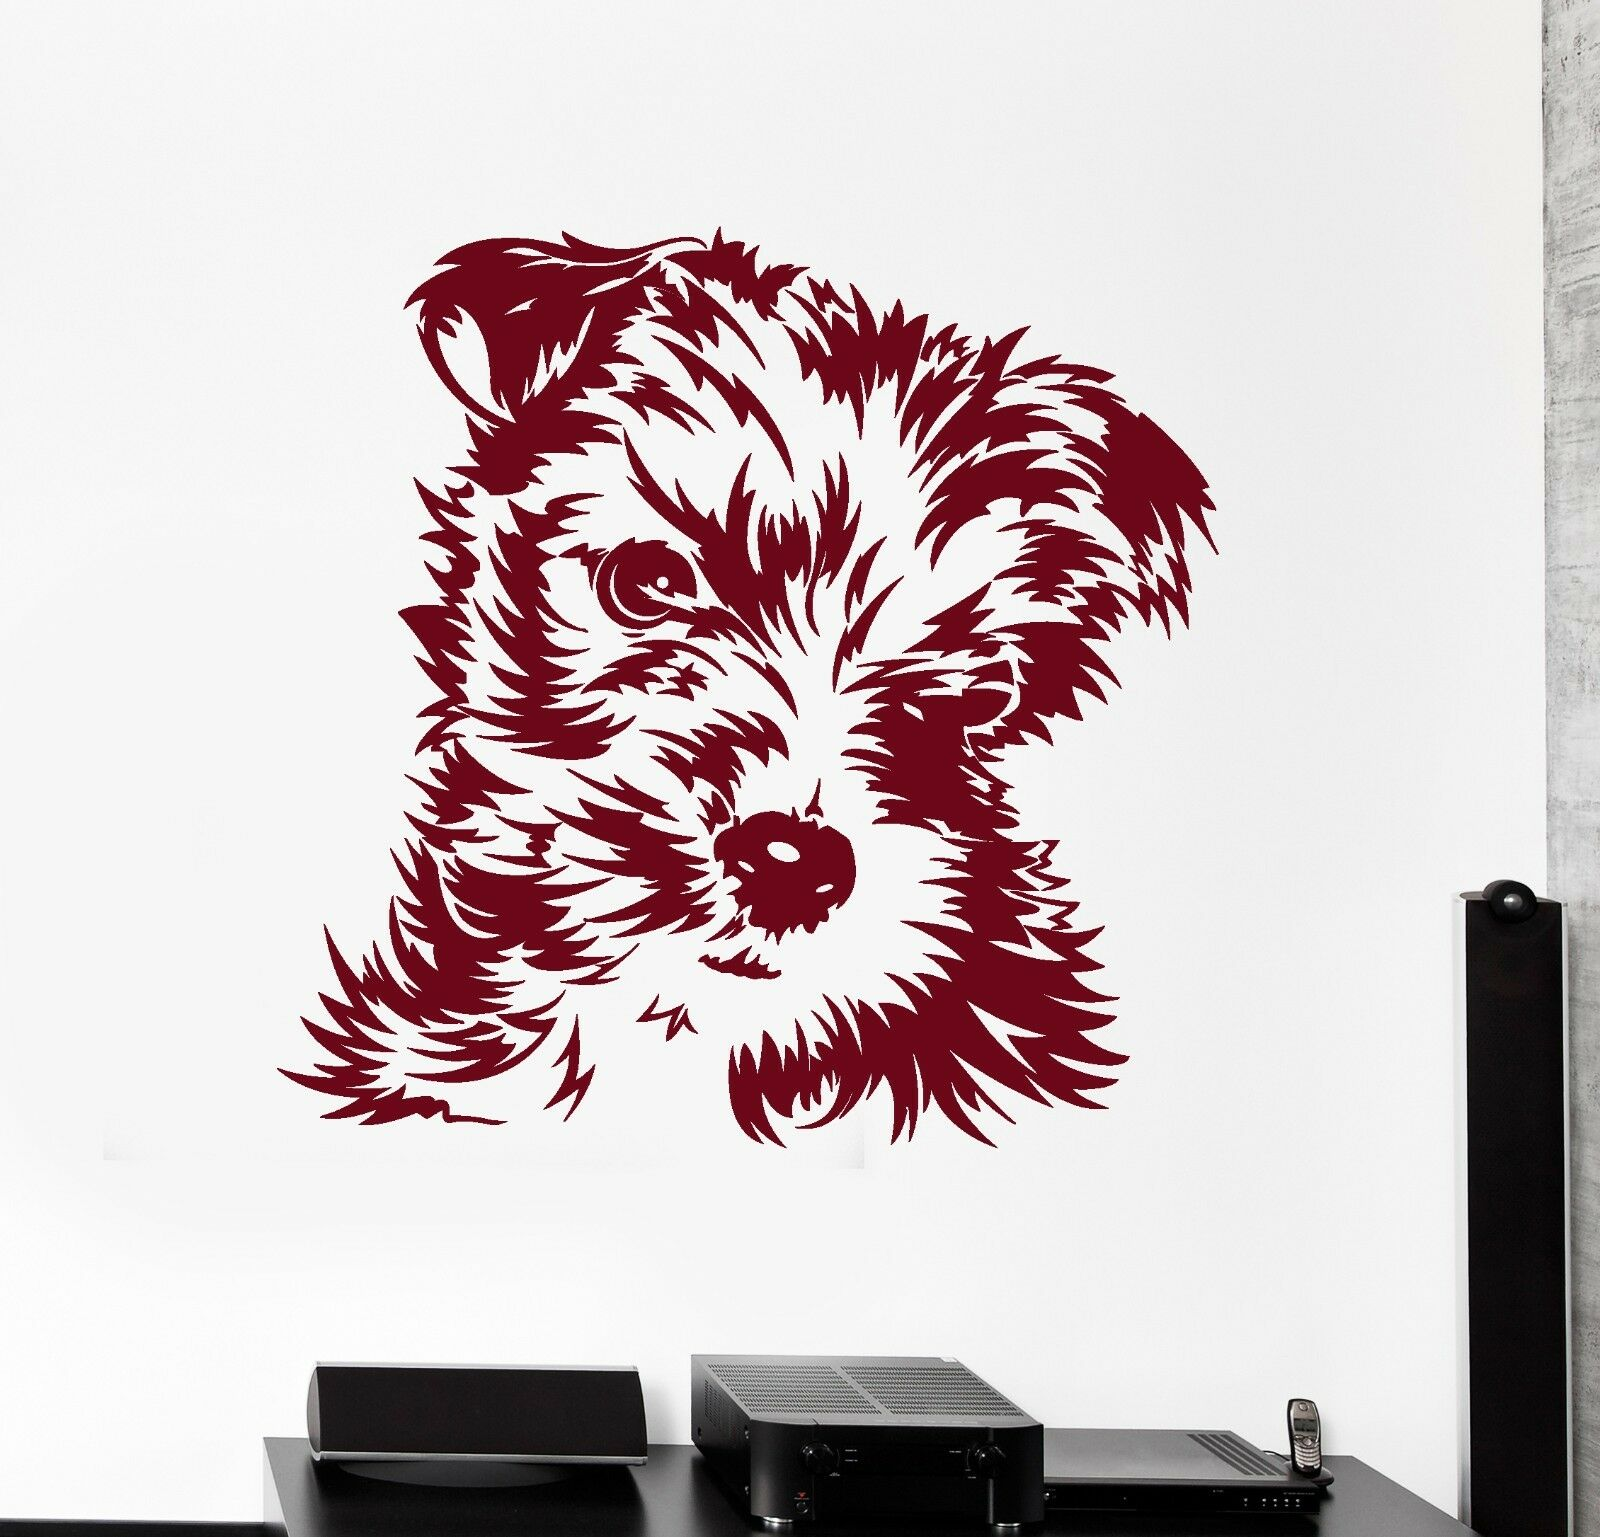 Wand Vinyl Decal Puppy Hund Animals Cute Pets Amazing Living Room Decor z3905